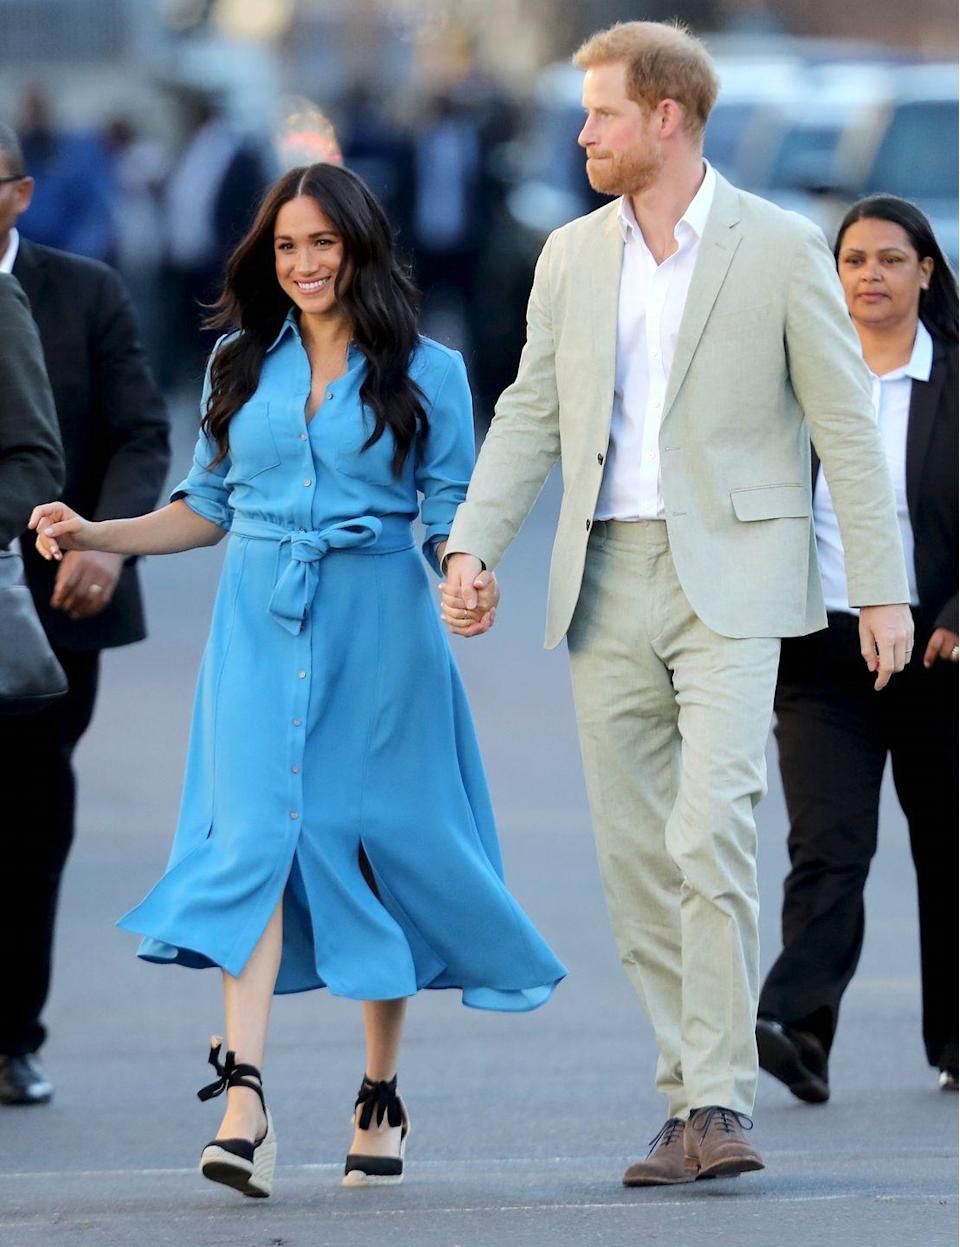 "<p>The Duchess of Sussex repeatedly pulled out her beloved Castañer espadrilles <a href=""https://www.townandcountrymag.com/style/fashion-trends/g29234691/meghan-markle-africa-tour-fashion-outfits-photos/"" rel=""nofollow noopener"" target=""_blank"" data-ylk=""slk:during her and the Duke's royal tour of South Africa"" class=""link rapid-noclick-resp"">during her and the Duke's royal tour of South Africa</a>. The shoes were a natural choice for the balmy climate.<br></p>"